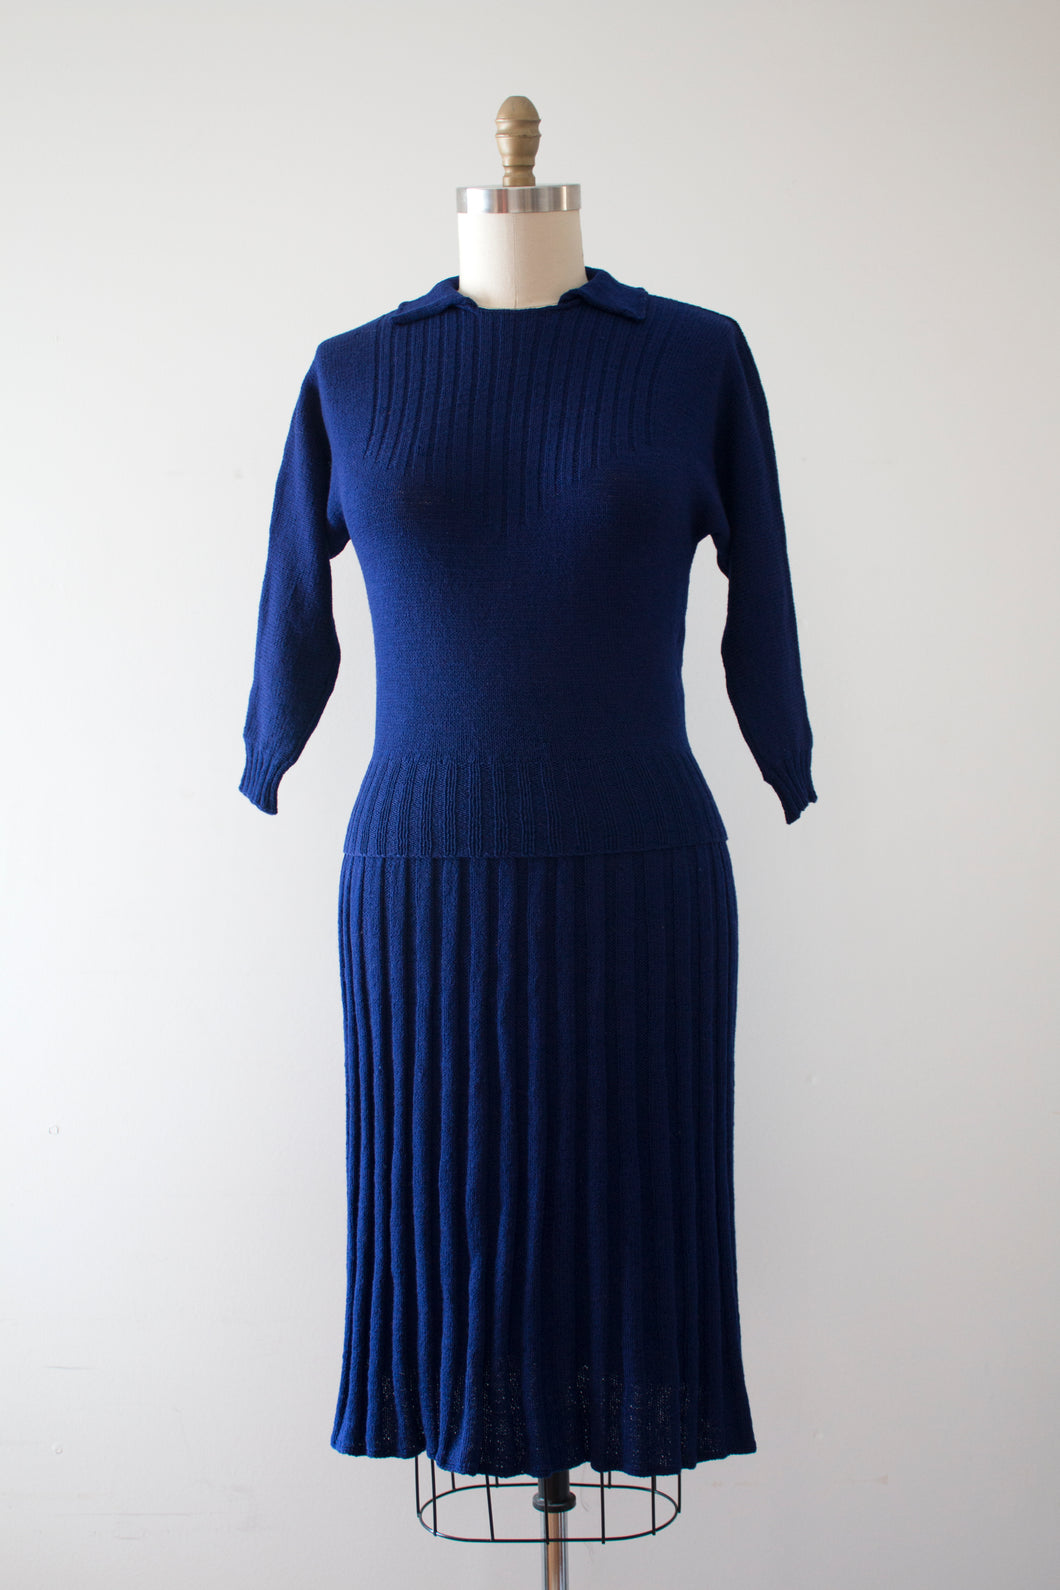 vintage 1940s blue knit dress set